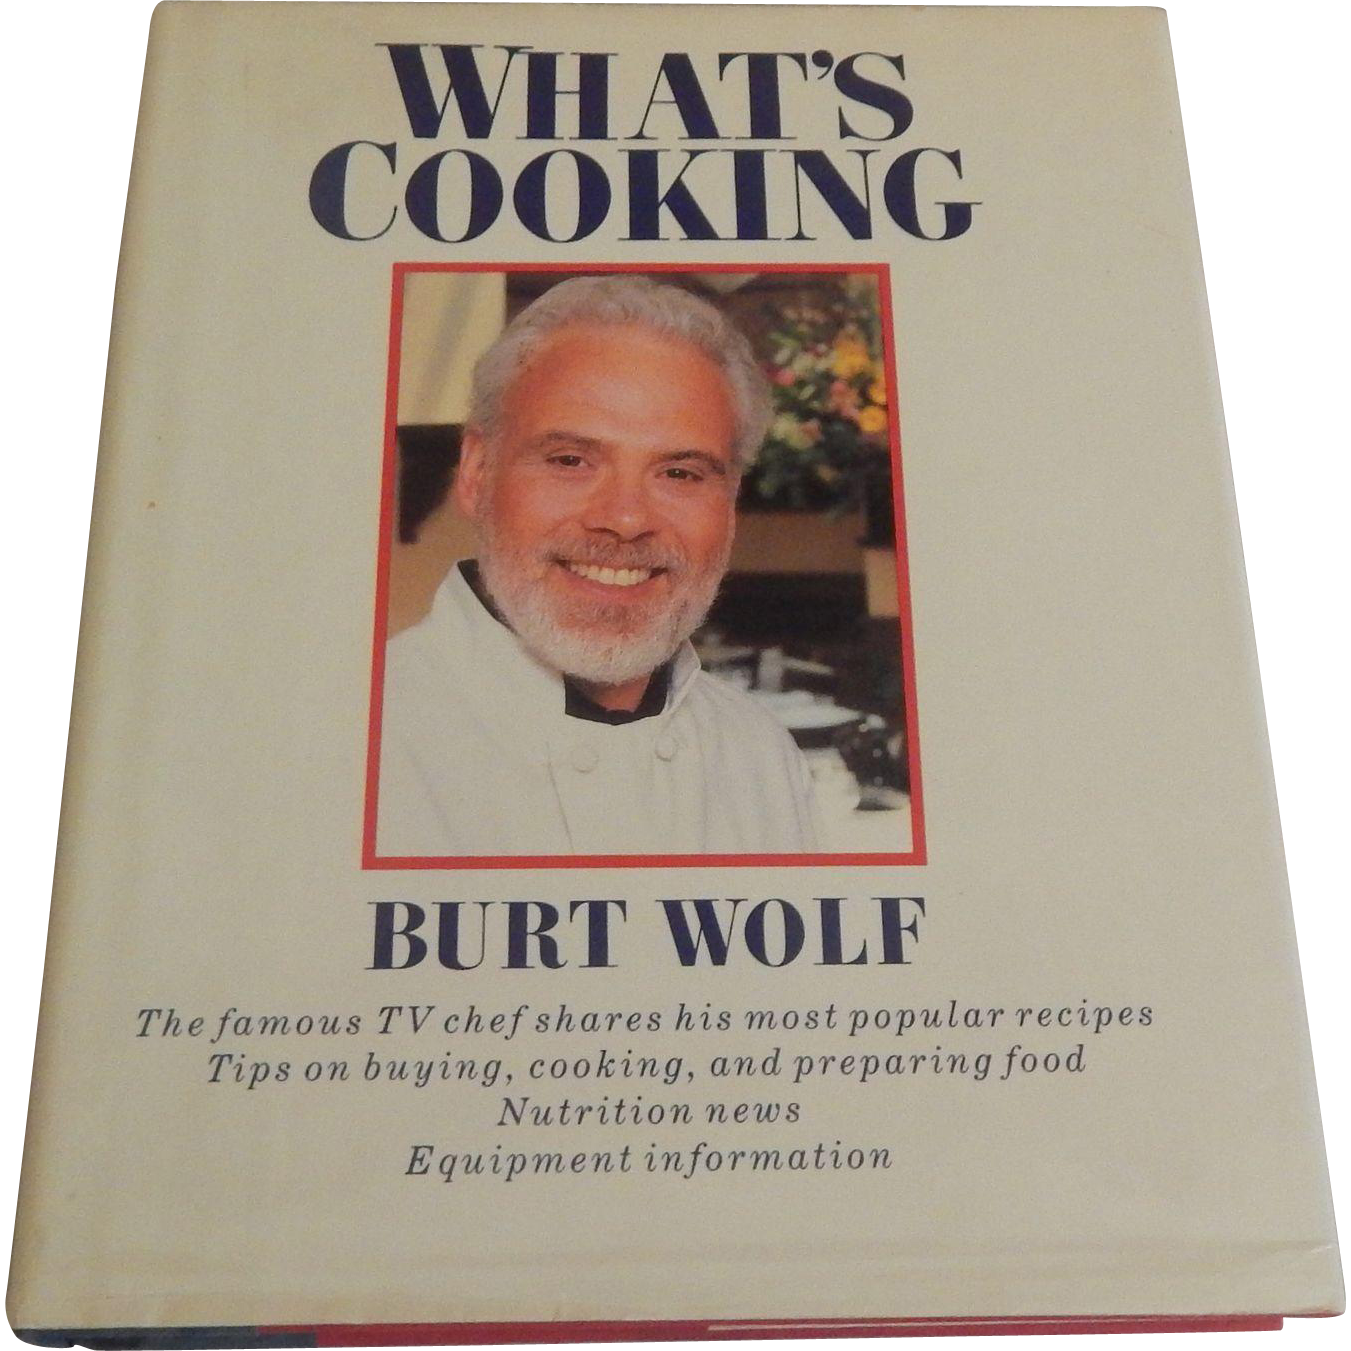 What's Cooking by Burt Wolf